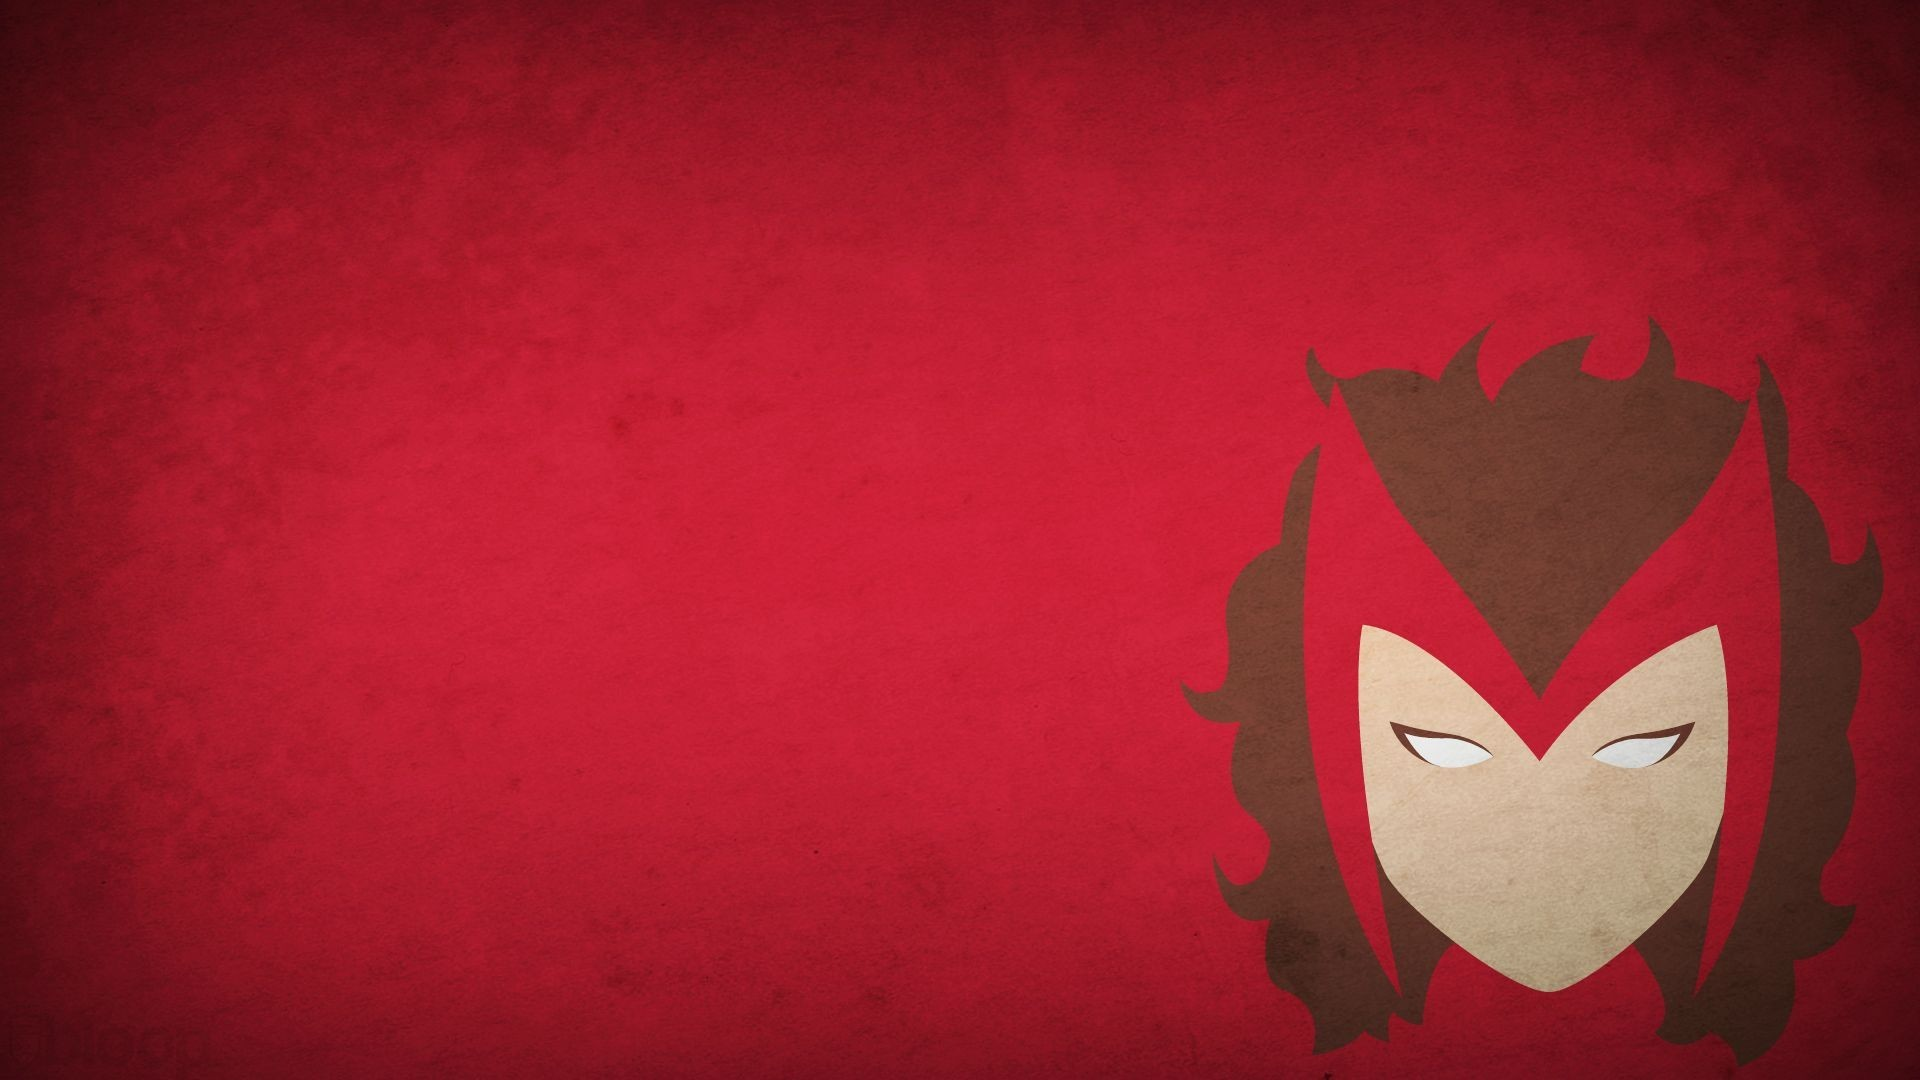 Res: 1920x1080, minimalism blo0p scarlet witch red background superhero marvel heroes  wallpaper and background